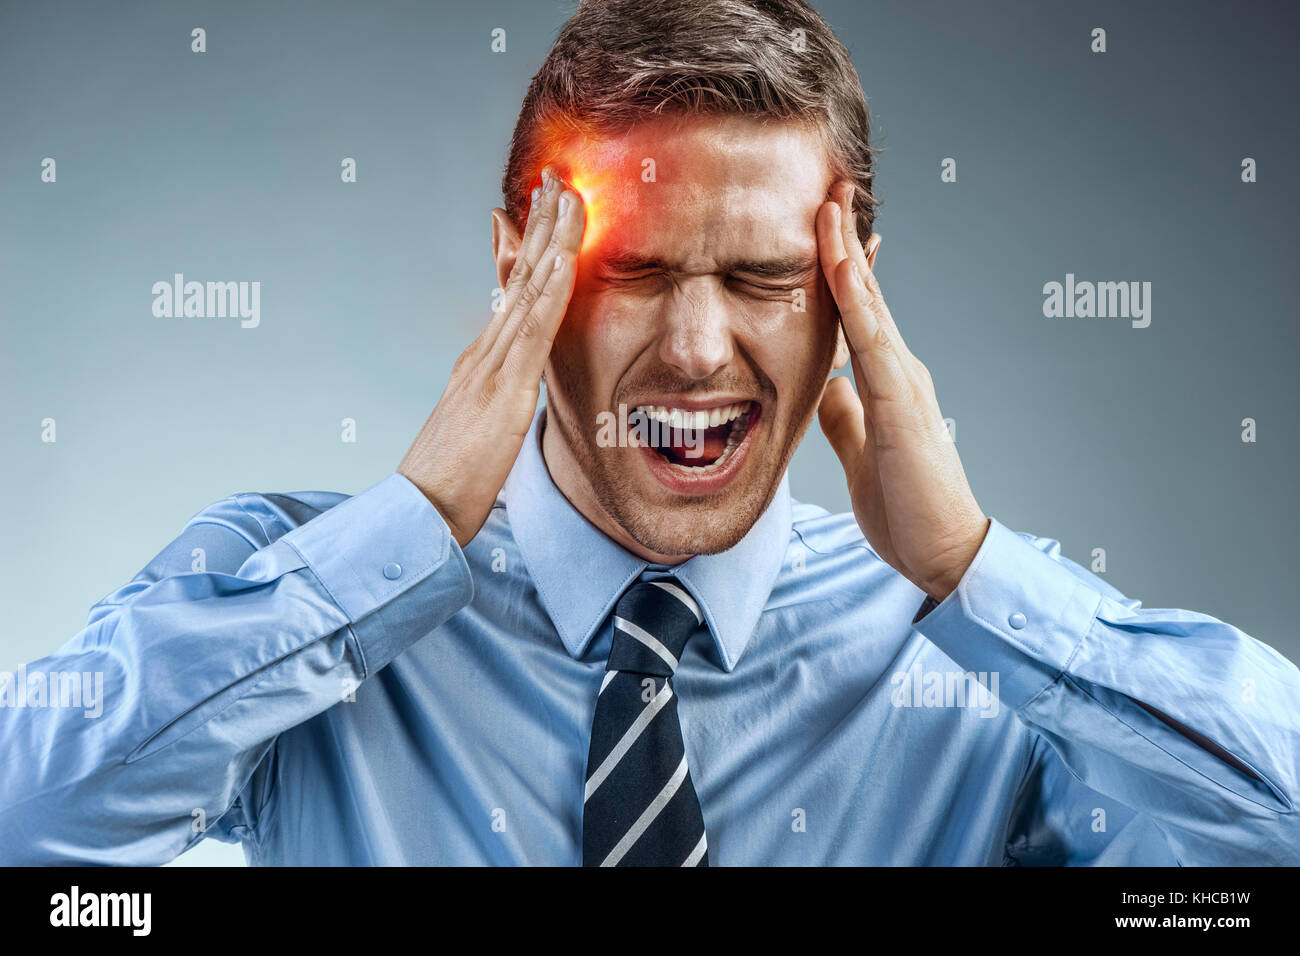 Businessman with pain in his temples. Photo of man suffering from stress or a headache grimacing in pain. Medical - Stock Image